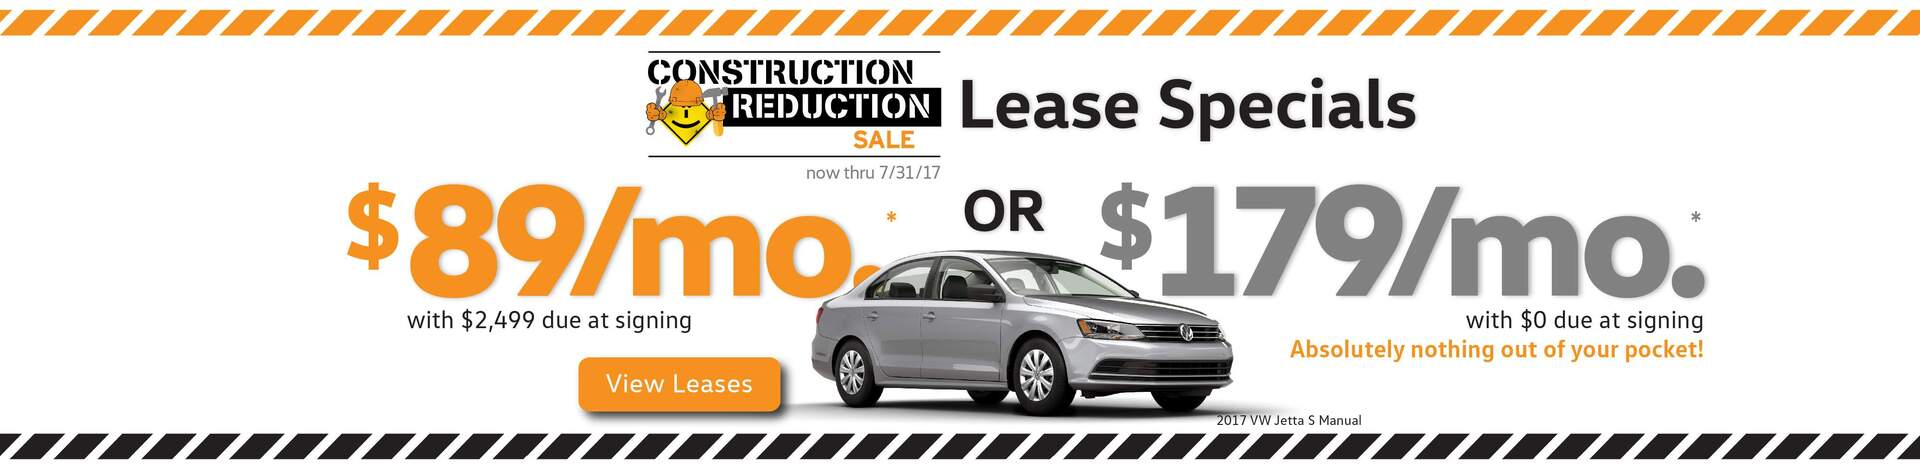 VW July $0 due at signing Lease Specials